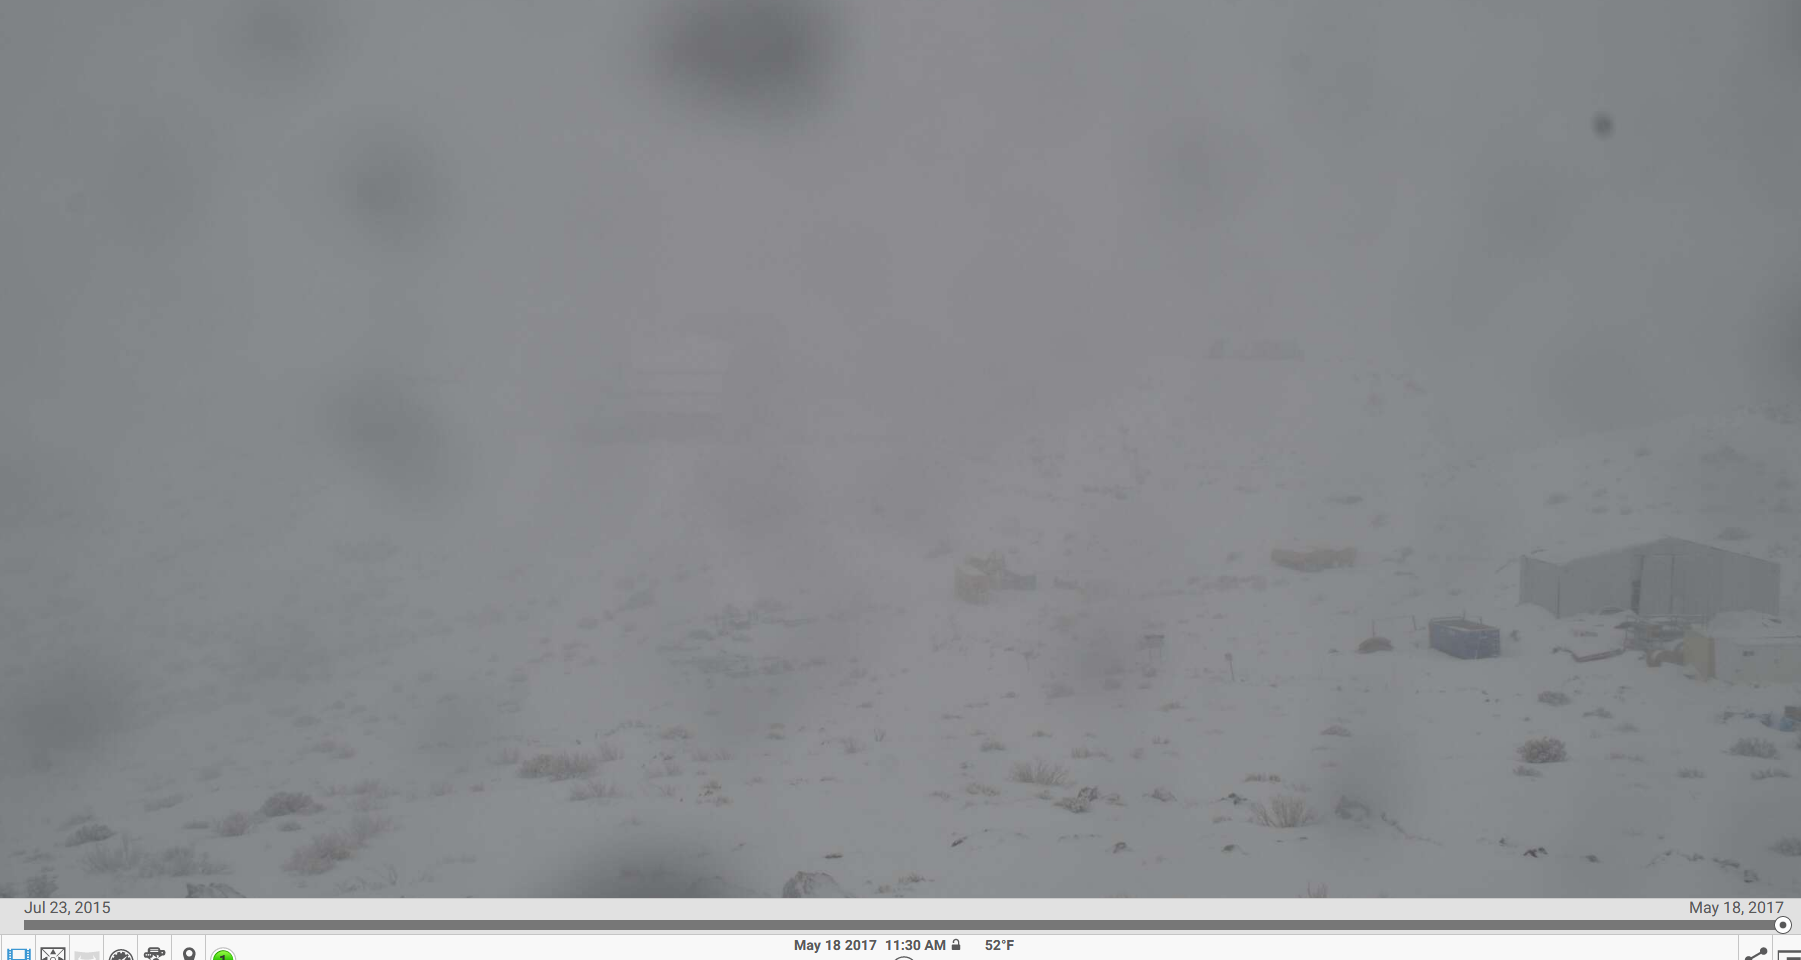 This photo was taken from the site webcam during one of the storms. Where's LSST?